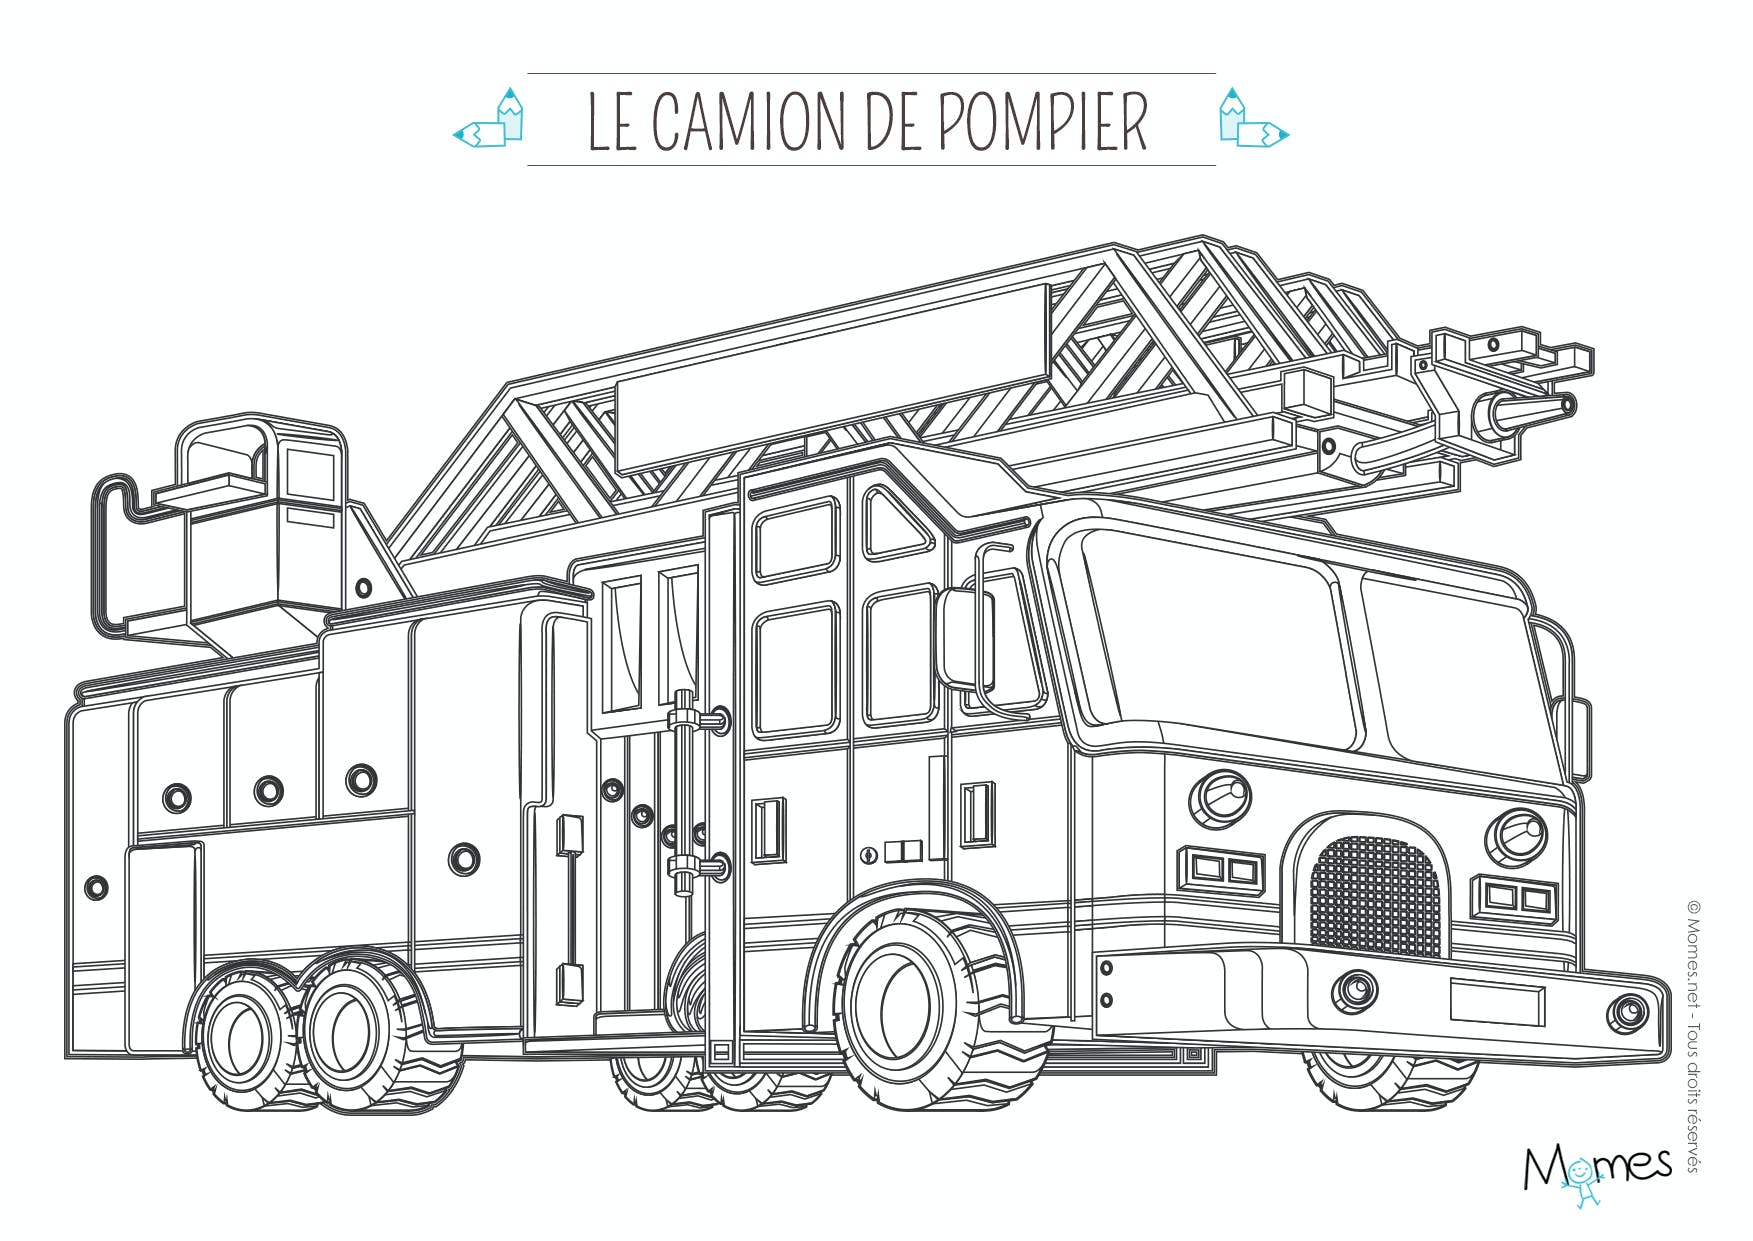 Luxe dessin a imprimer camion americain - Camion americain dessin ...